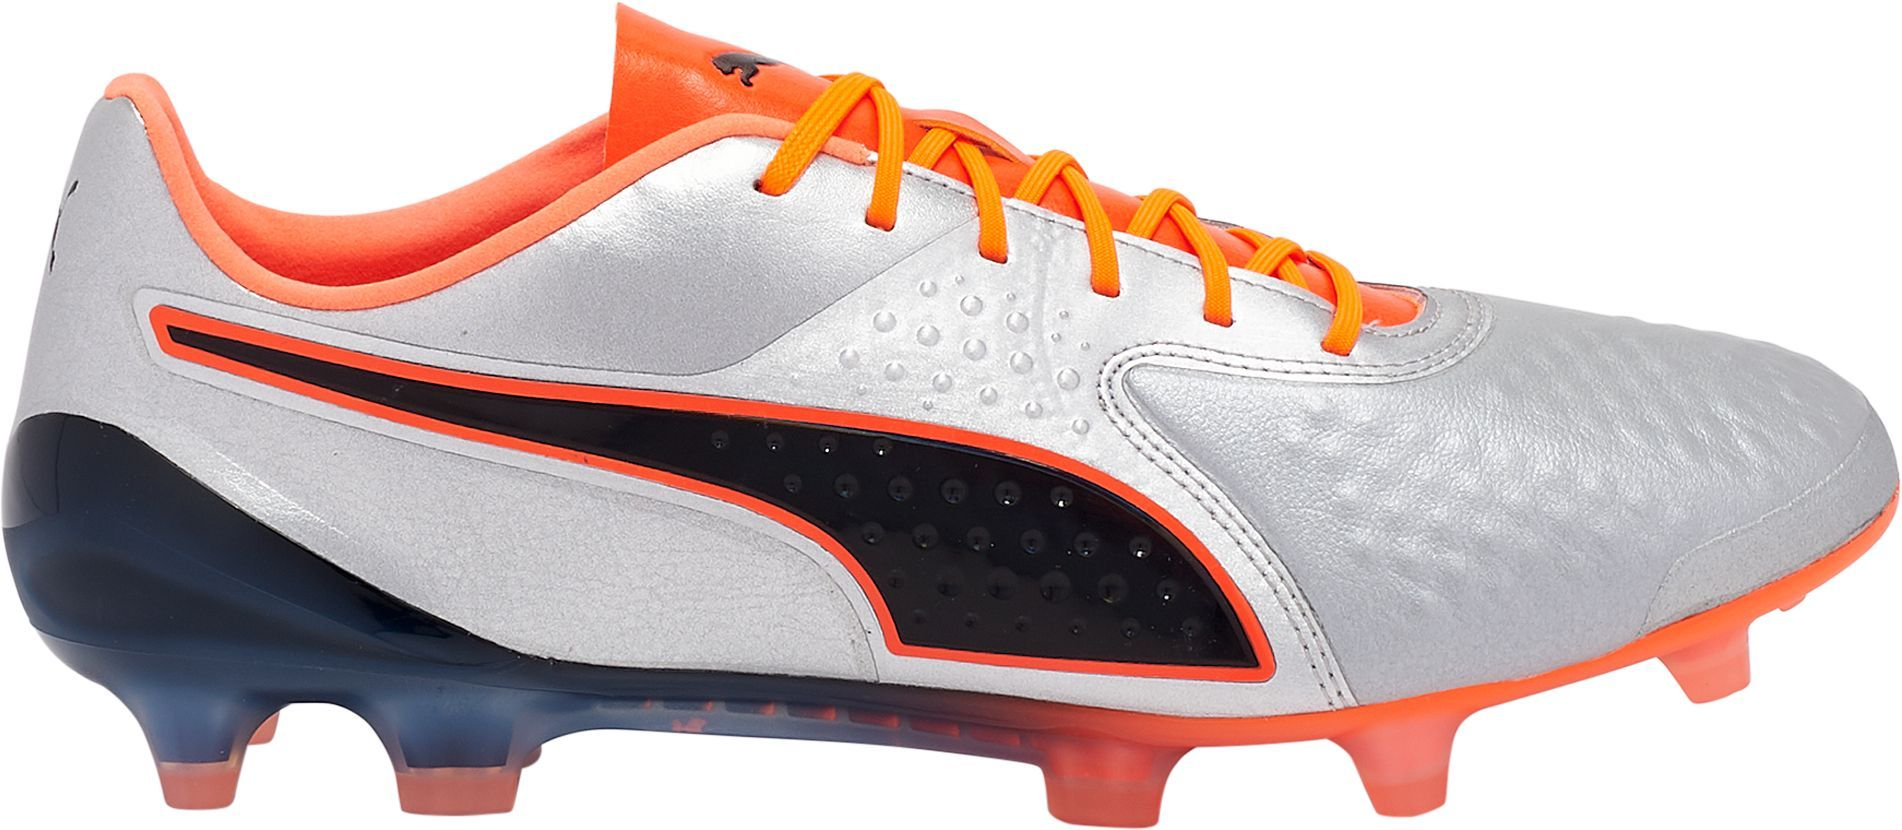 Soccer cleats, Puma mens, Leather